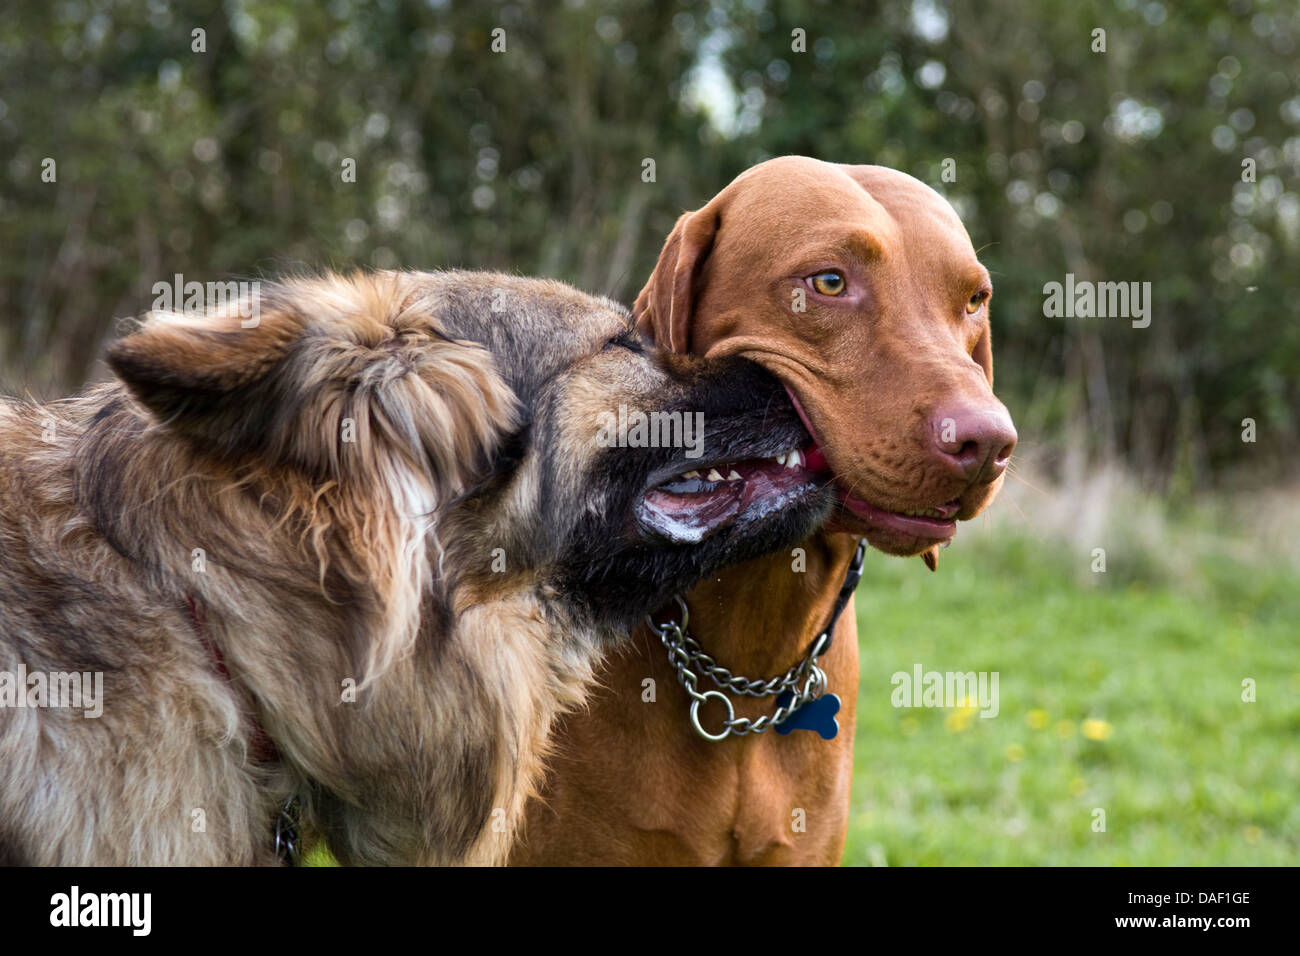 Amusing dog picture with nose stuck in another dogs mouth trying to take toy away. German Shepherd dog and a Hungarian - Stock Image